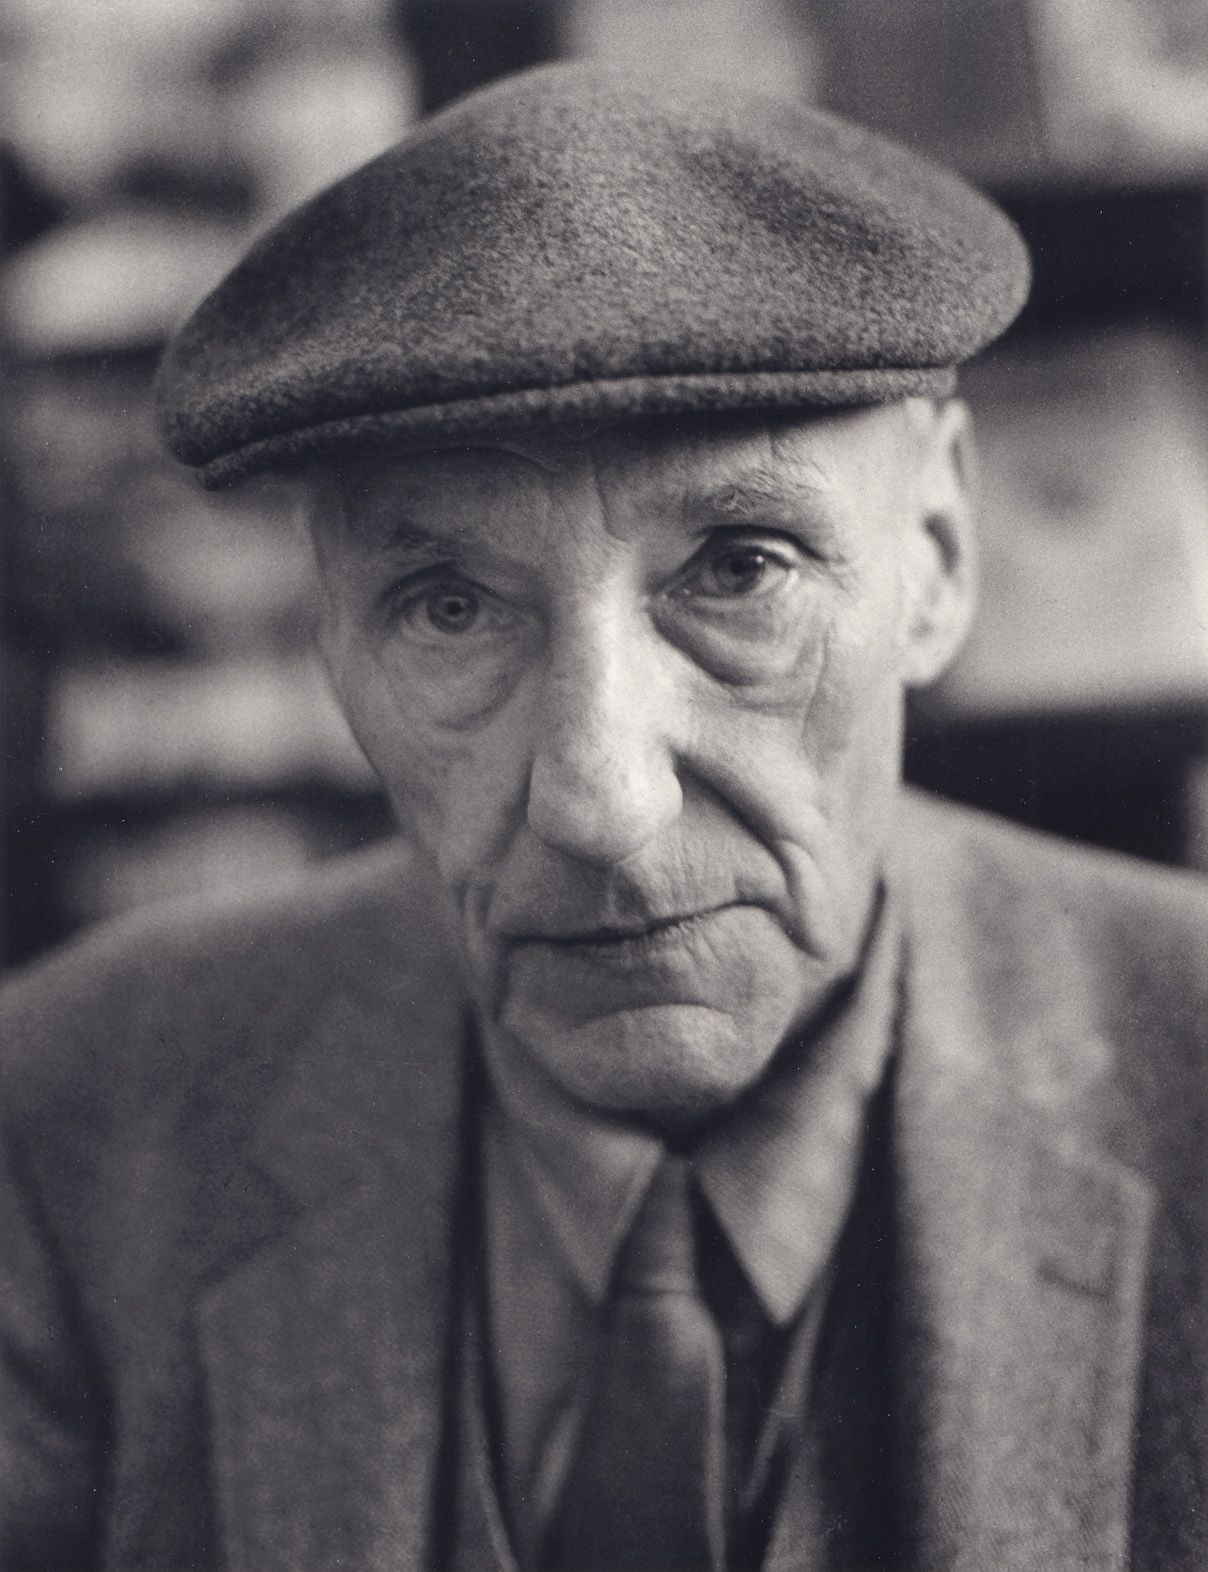 William S. Burroughs, San Francisco, 1980, 10 x 8 Silver Gelatin Photograph